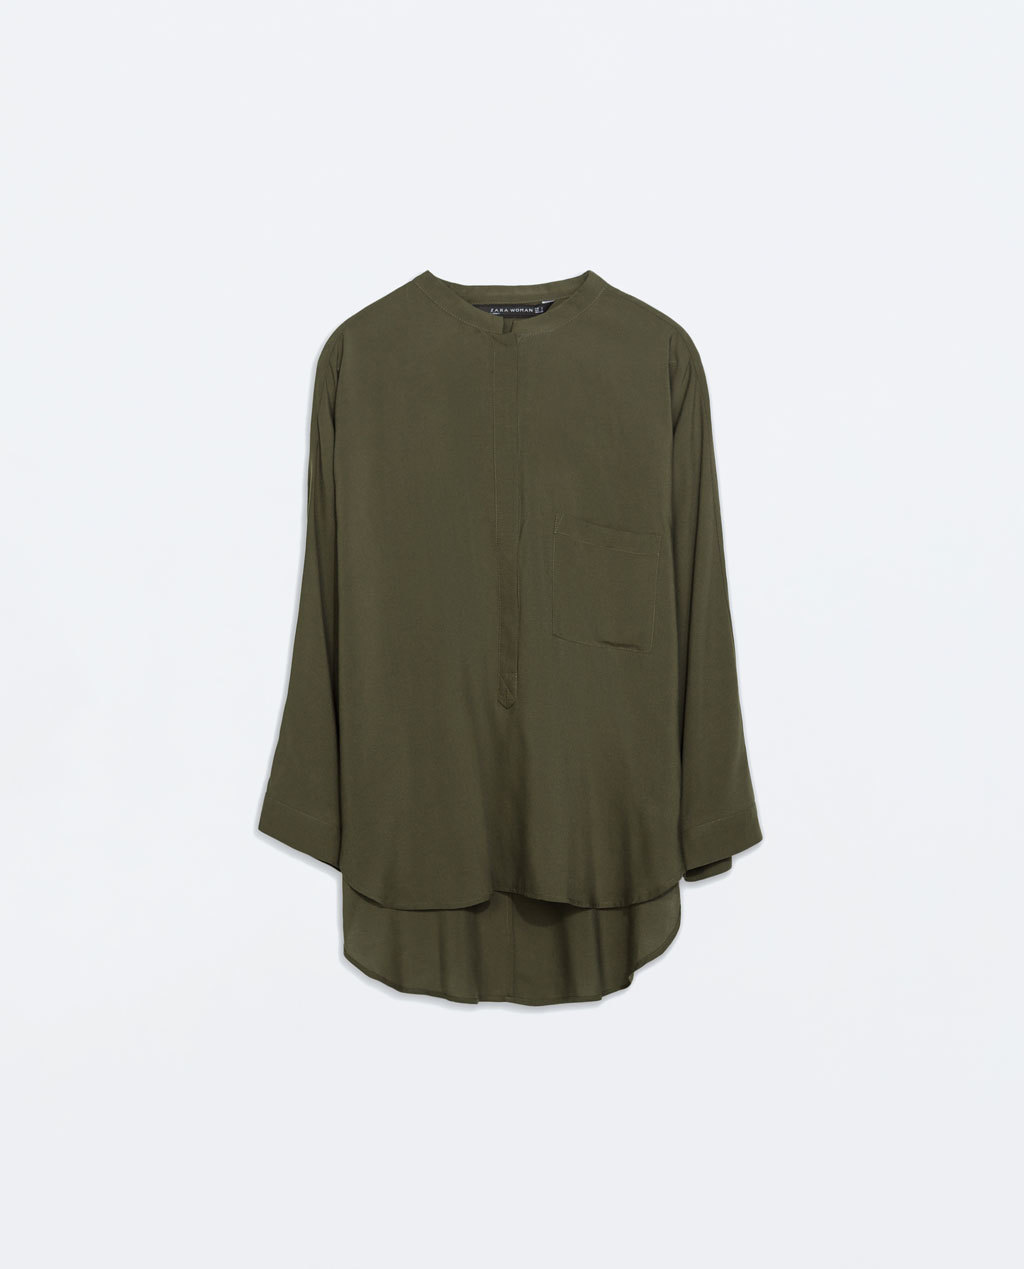 Oversized Mao Collar Blouse - pattern: plain; style: blouse; predominant colour: khaki; occasions: casual, creative work; length: standard; neckline: collarstand; fibres: viscose/rayon - 100%; fit: loose; back detail: longer hem at back than at front; sleeve length: 3/4 length; sleeve style: standard; pattern type: fabric; texture group: woven light midweight; season: a/w 2014; embellishment location: bust